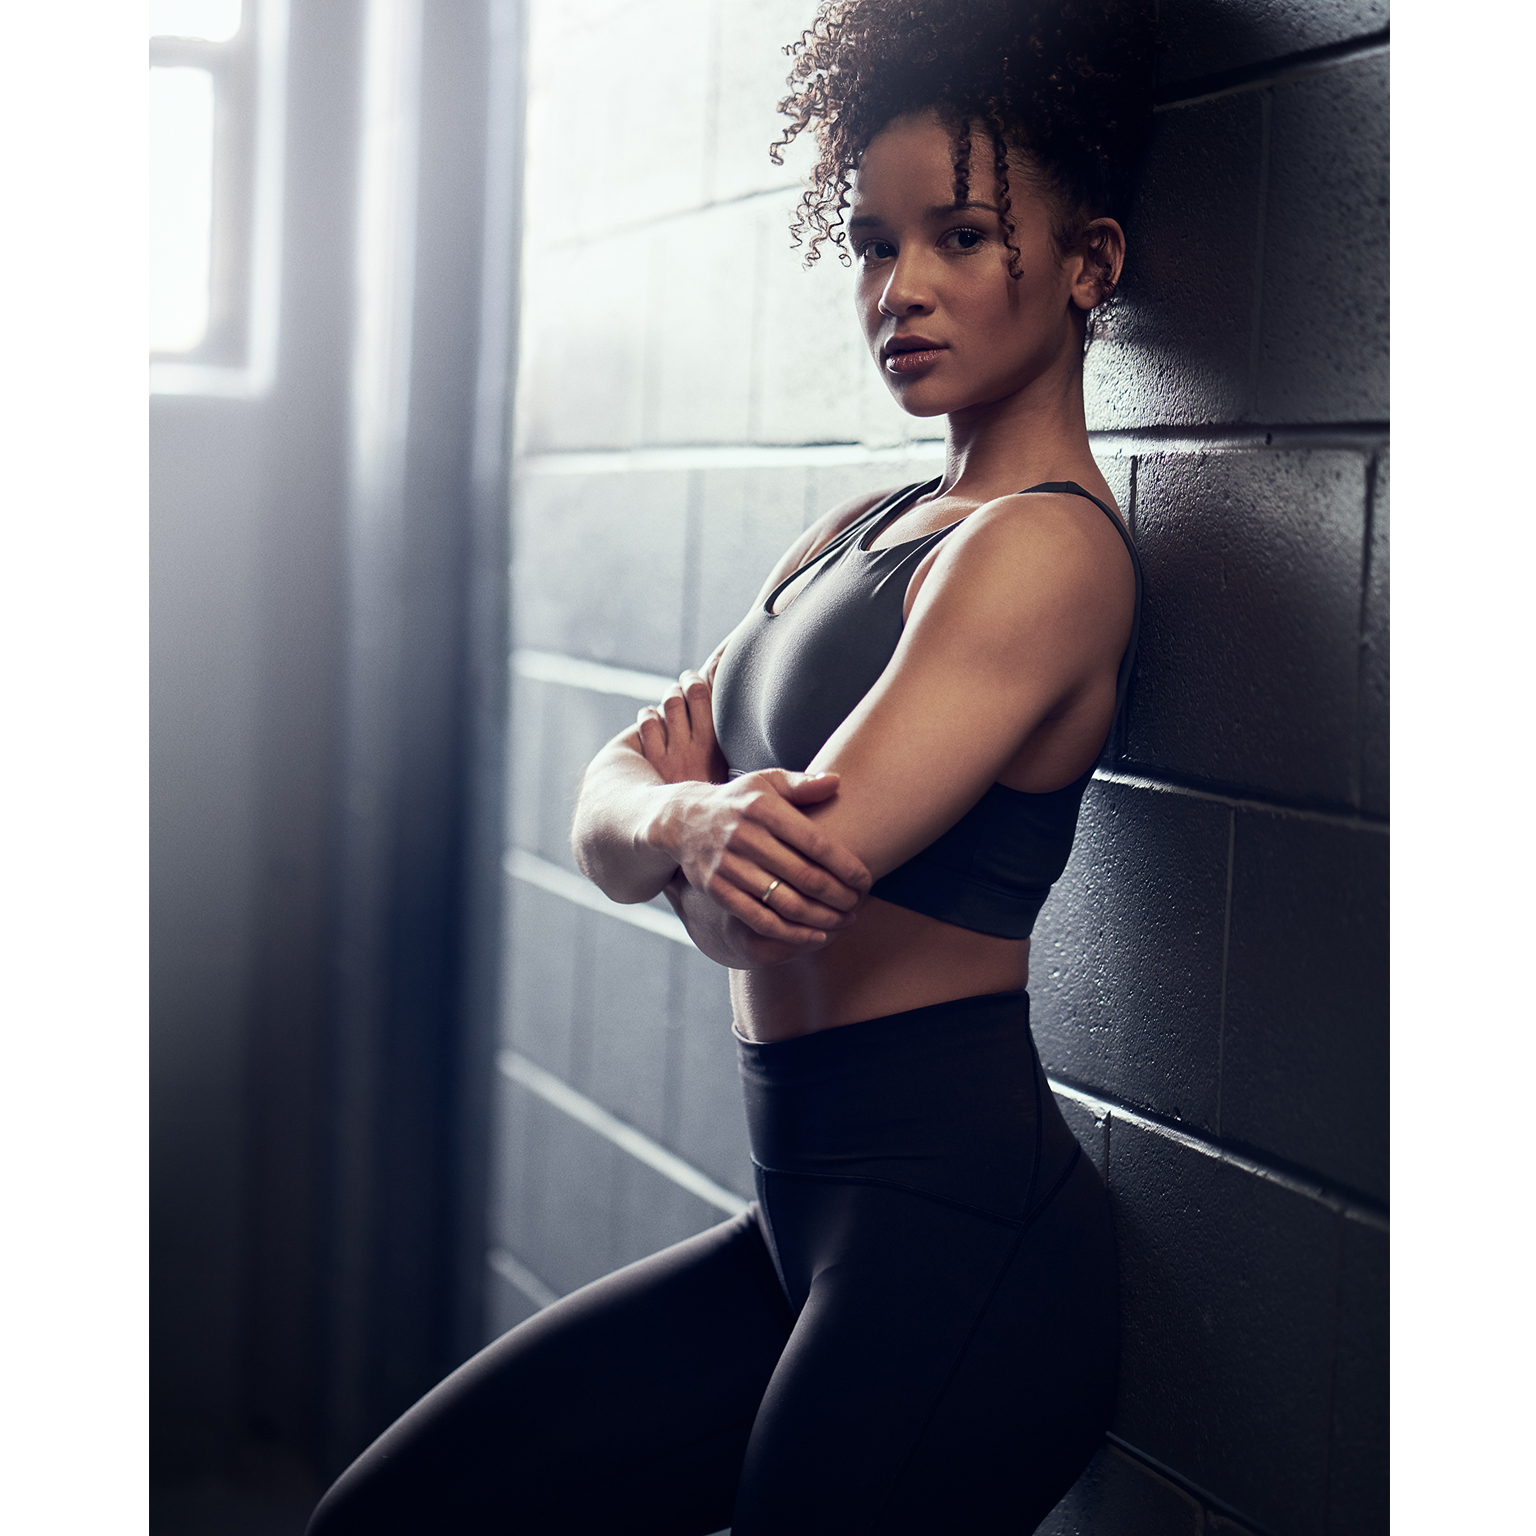 Toronto-Fitness-Model-Agency-Nike-Commercial-Olivia-Mbolekwa